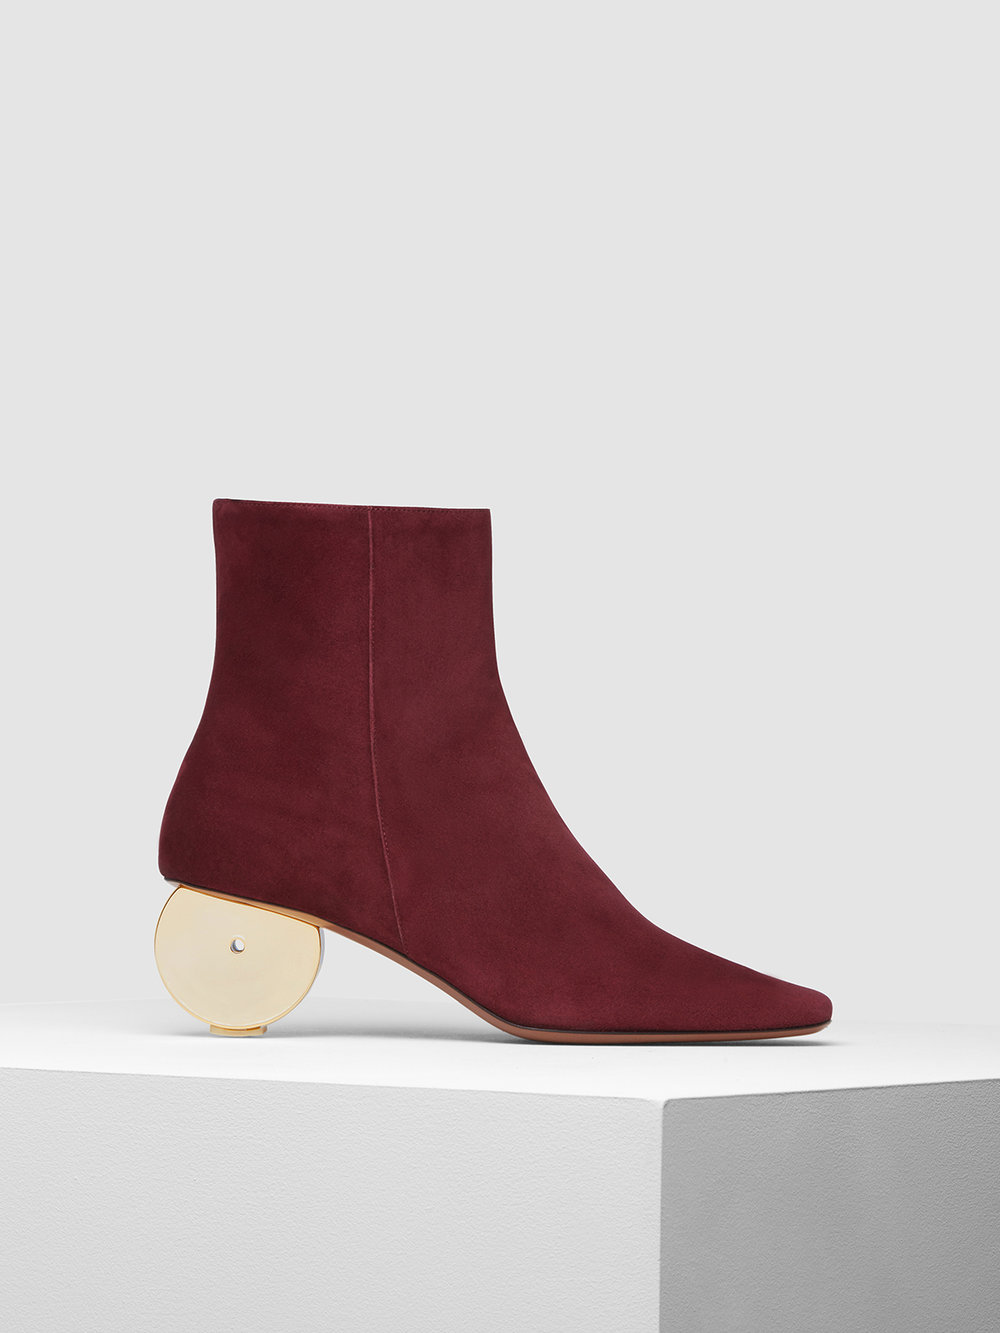 moon boot burgundy side.jpg